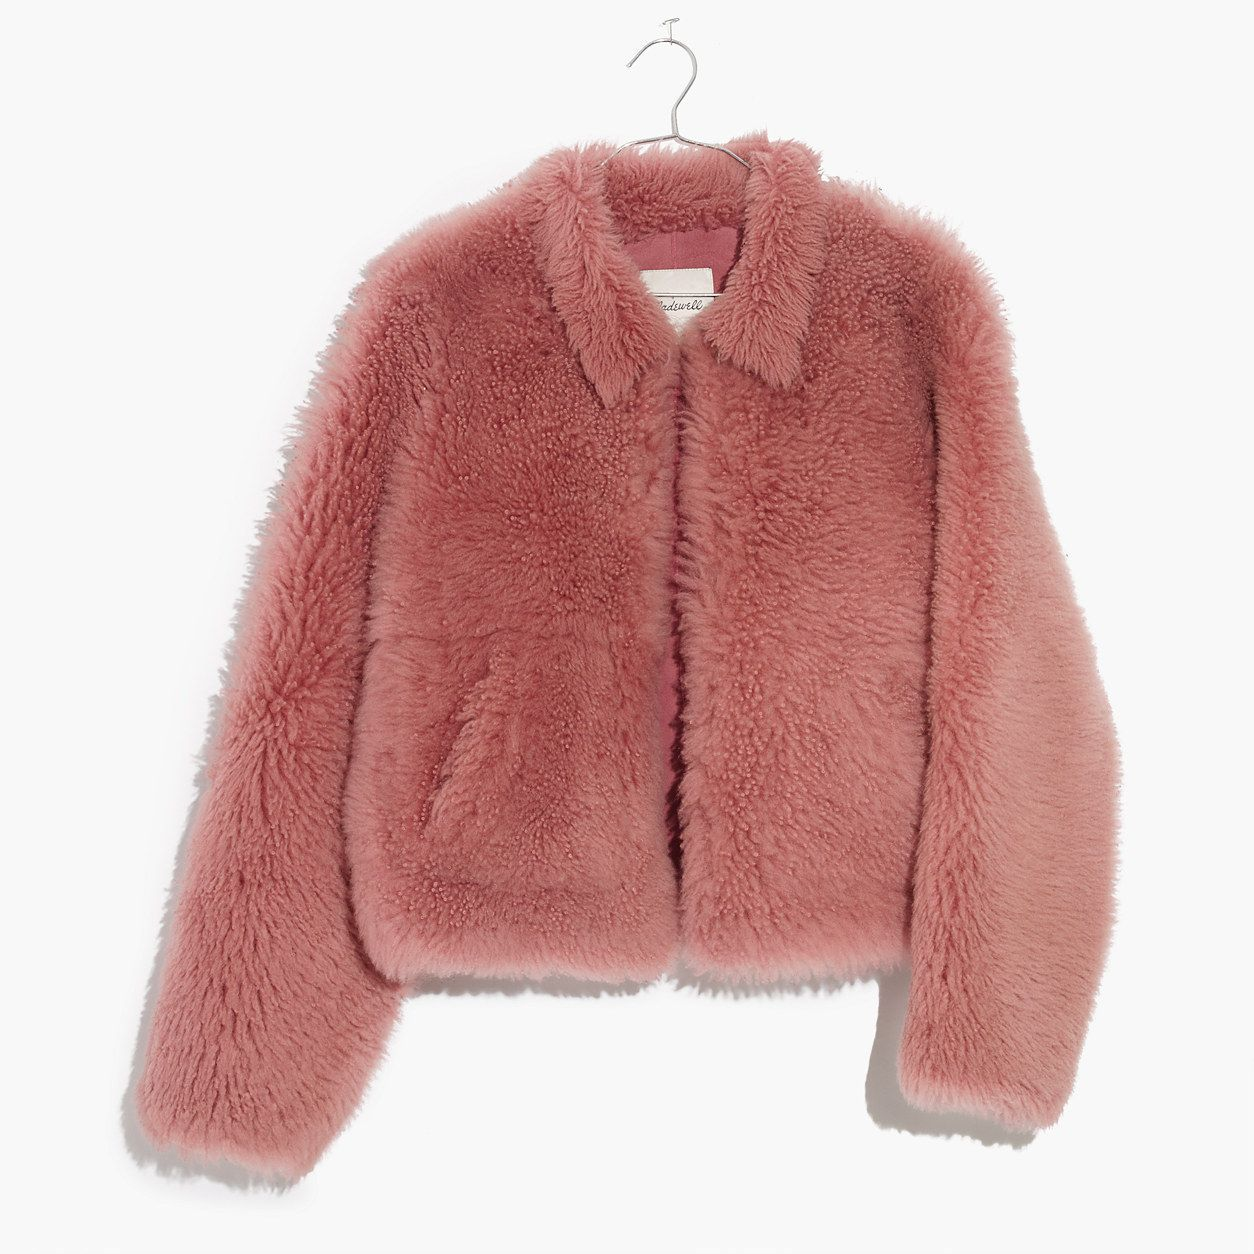 Sheinside Pink Pearl Beading Textured Faux Fur Coat Winter Collarless Cute